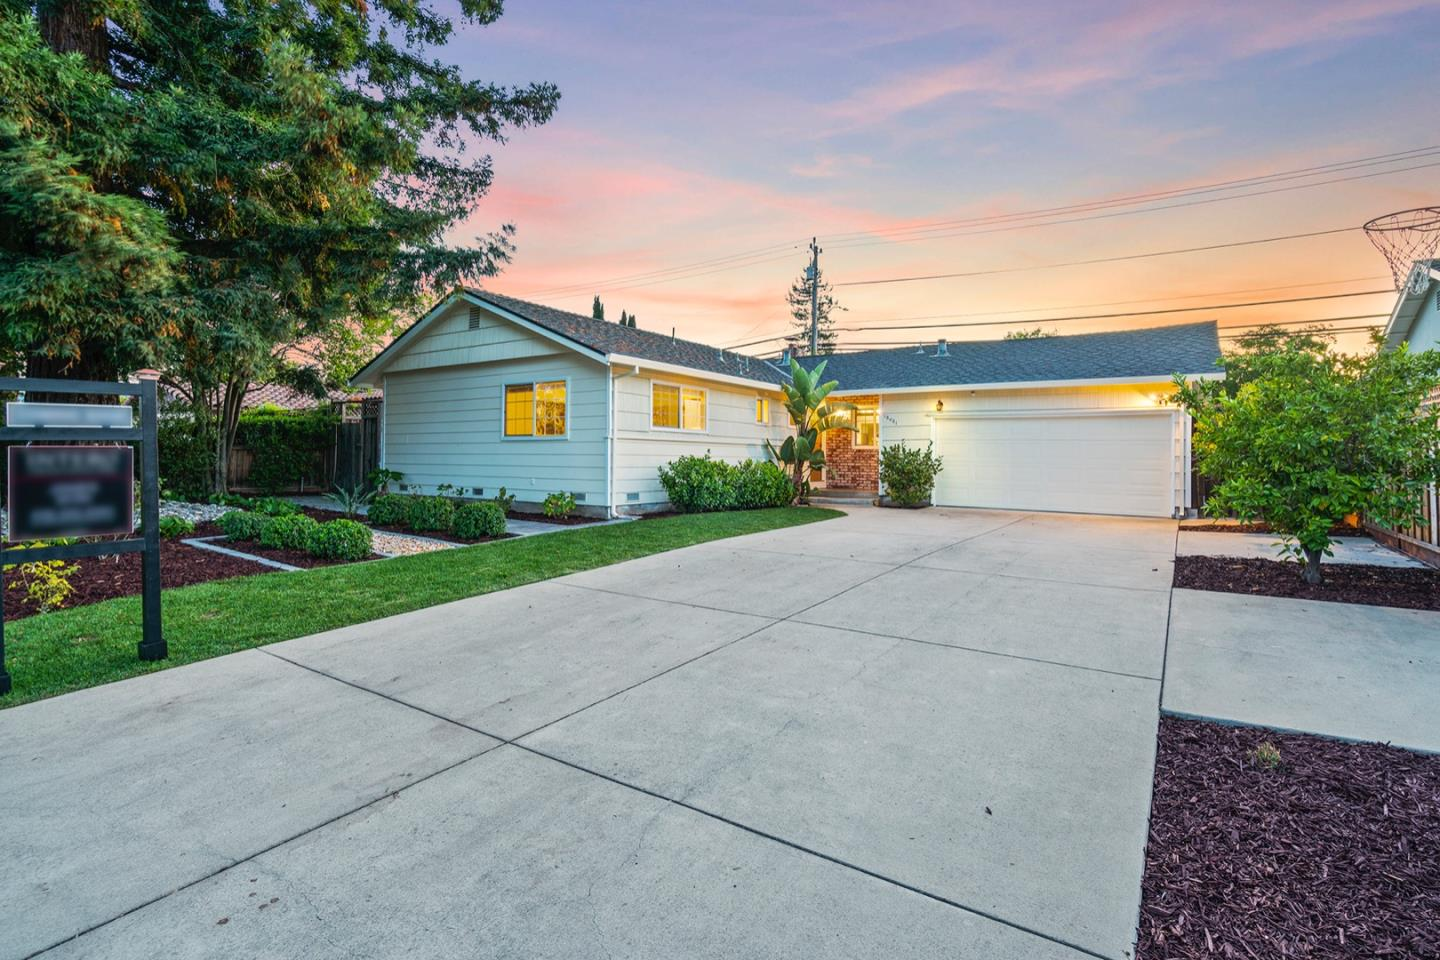 RECENTLY REMODELED & STAGED! Ideal location w/n biking distance to Apple & Netflix. Close to major tech giants. Remodeled & updated single level interior offers abundance of flexible space & opportunity to expand. Large lot w/deep setback. Potential ADU. Over 1,700 sf (measured) incl 430 +/- sf enclosed sunrm/fam. rm & office sp. New high-end engineered hardwood flrs. 3 bds, 2 stylish bths w/new vanities, tile, fixtures. High ceilings, crown molding, wood blinds, dual pane windows, sliders, French dr. Updated kitchen w/granite counters, bksplsh, upper glass-faced cabinets, stainless appliances. Living rm w/frpl & marble hearth. Nest thermostats. Updated wtr htr, fences, sewer line. Oversized 2-car garage w/laundry. Refreshed landscaping, fruit, mature trees, flagstone patio, side yds. Top-rated Forest Hill  (API 944) & Rolling Hills (API 919)  w/in a mile.  Centralized location. Easy access to Highways 85, 17, 280, Lawrence Expwy, Westgate Mall, airport, dwntwns Saratoga & Los Gatos.